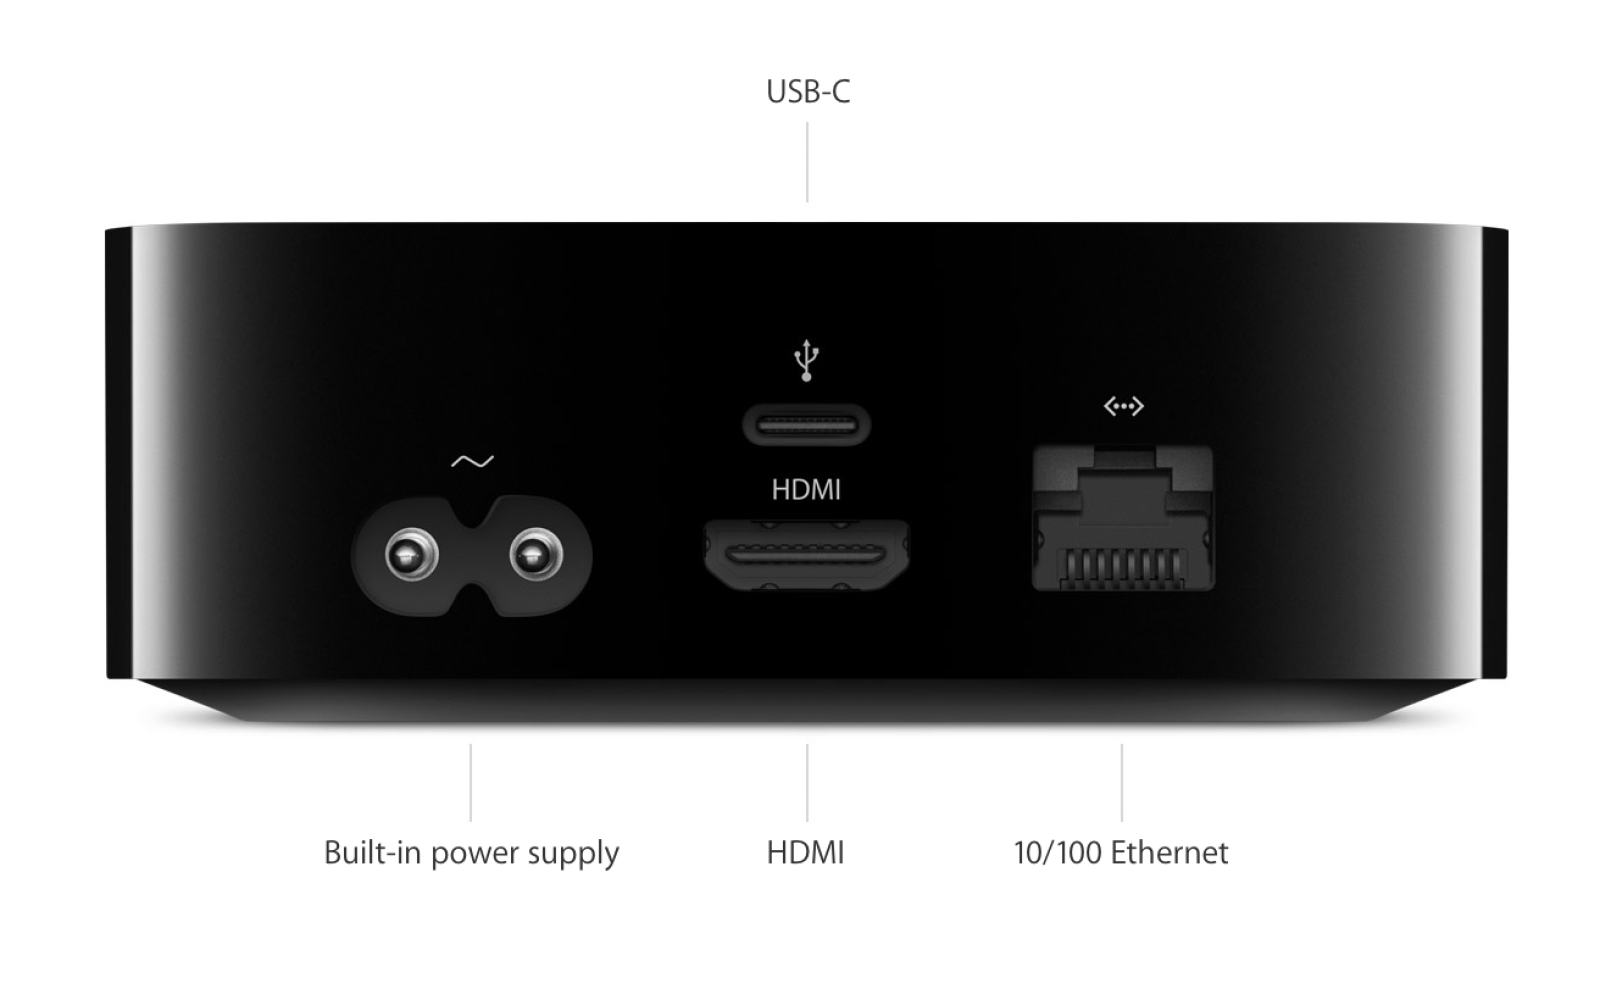 New Apple TV has 2 GB RAM, included 802.11ac WiFi is faster than its Ethernet port